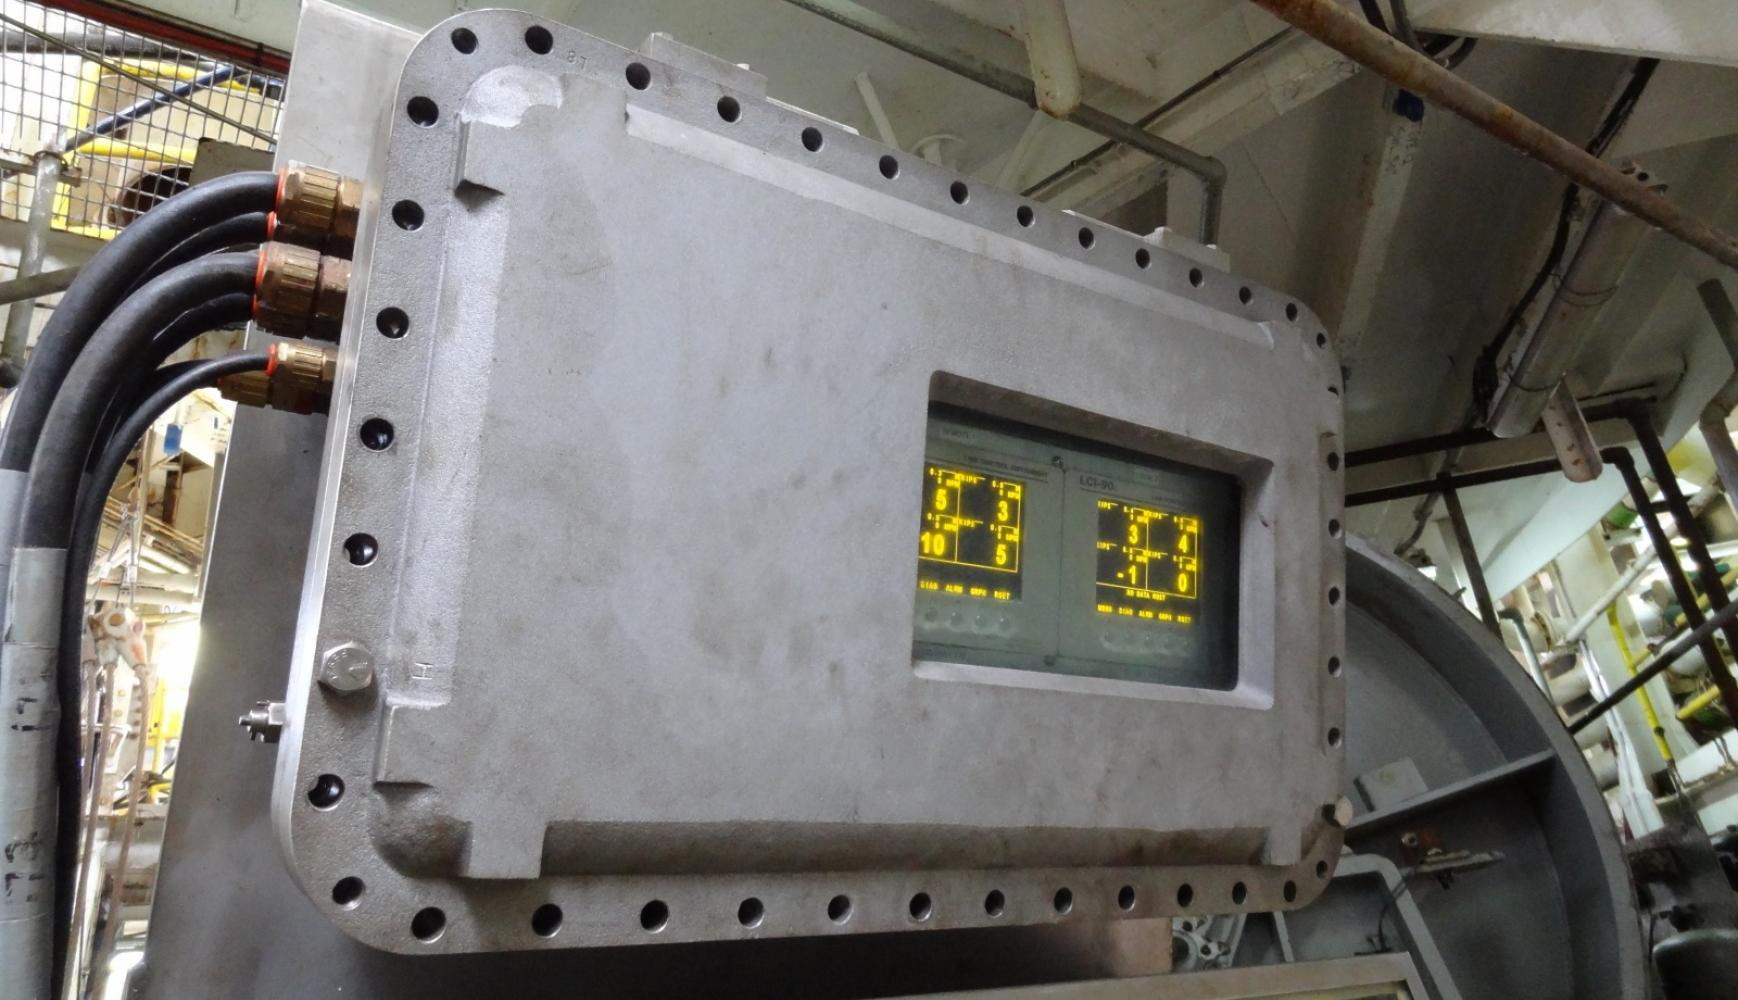 LCI-90 Display in Zone 2 Hazardous Environment, drill ship mooring